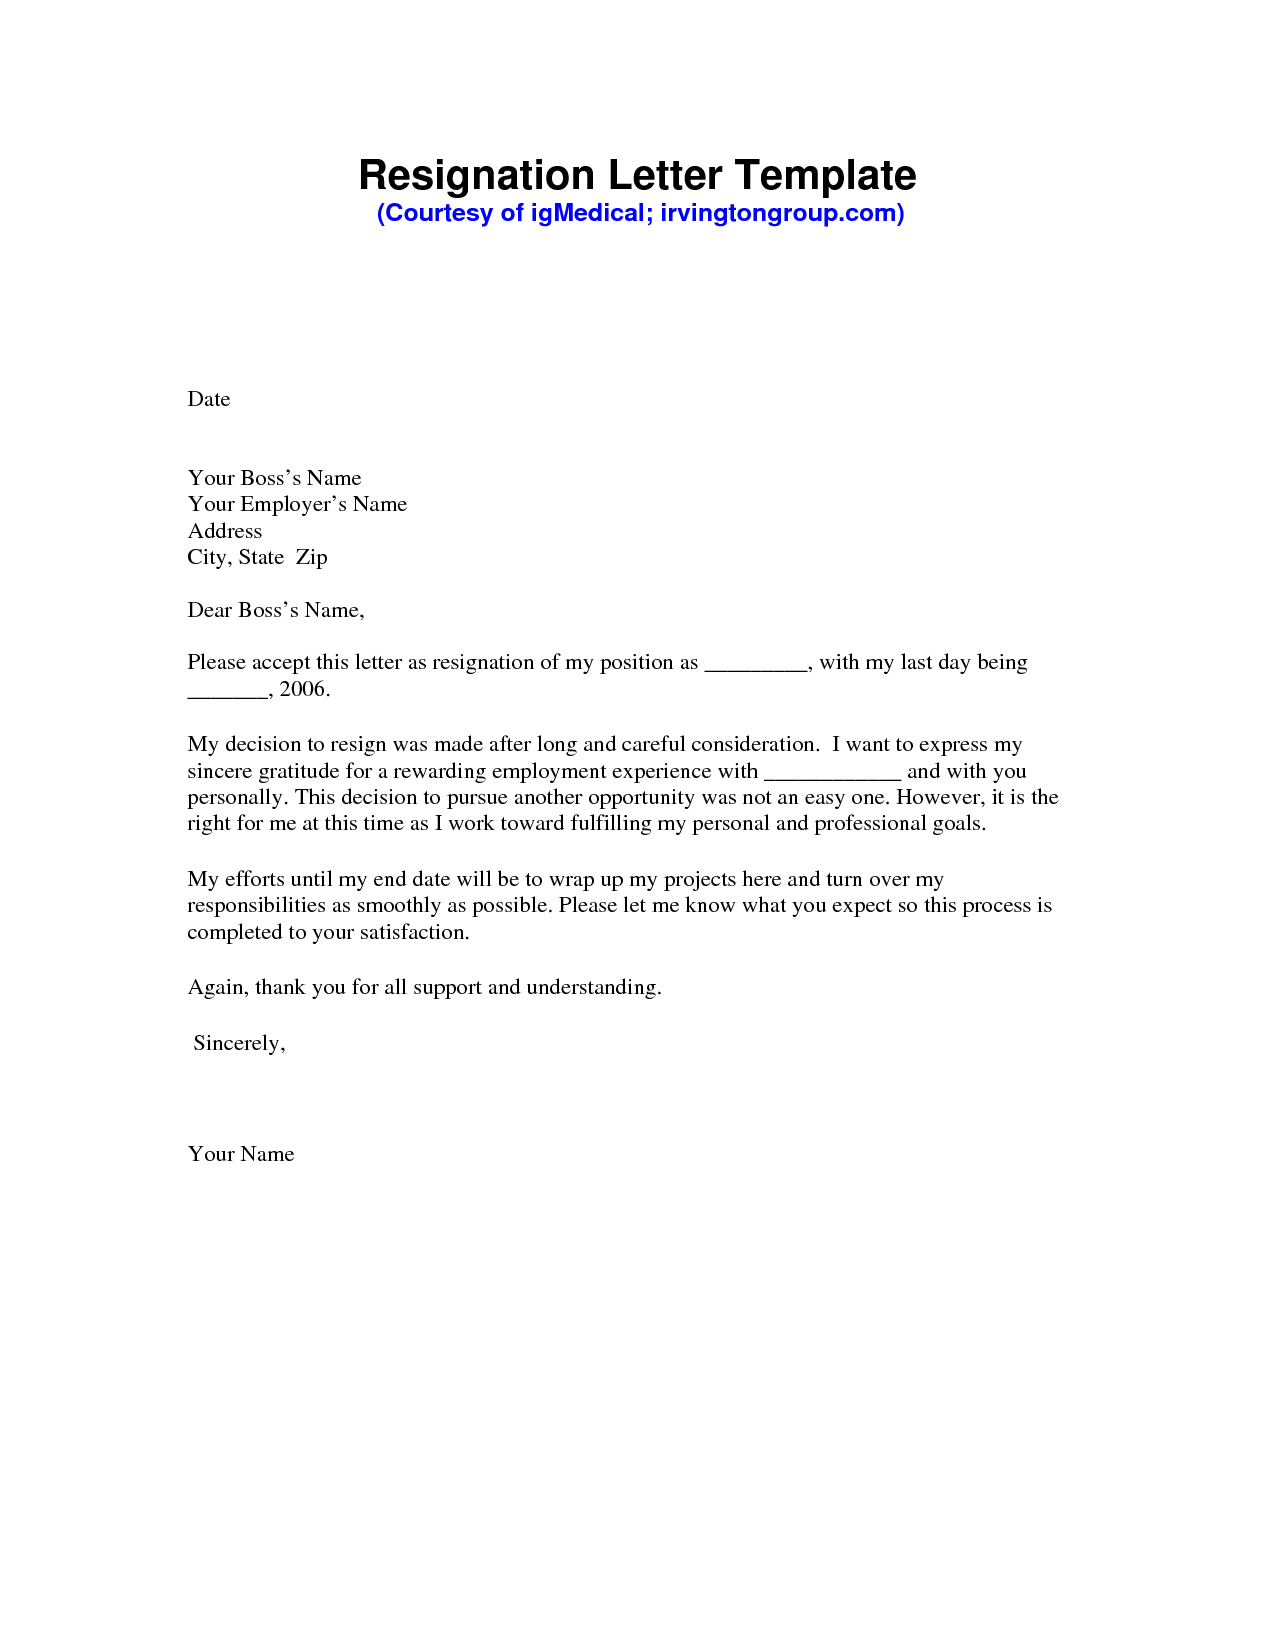 Resignation Letter Sample PDF | Resignation letter | Pinterest ...